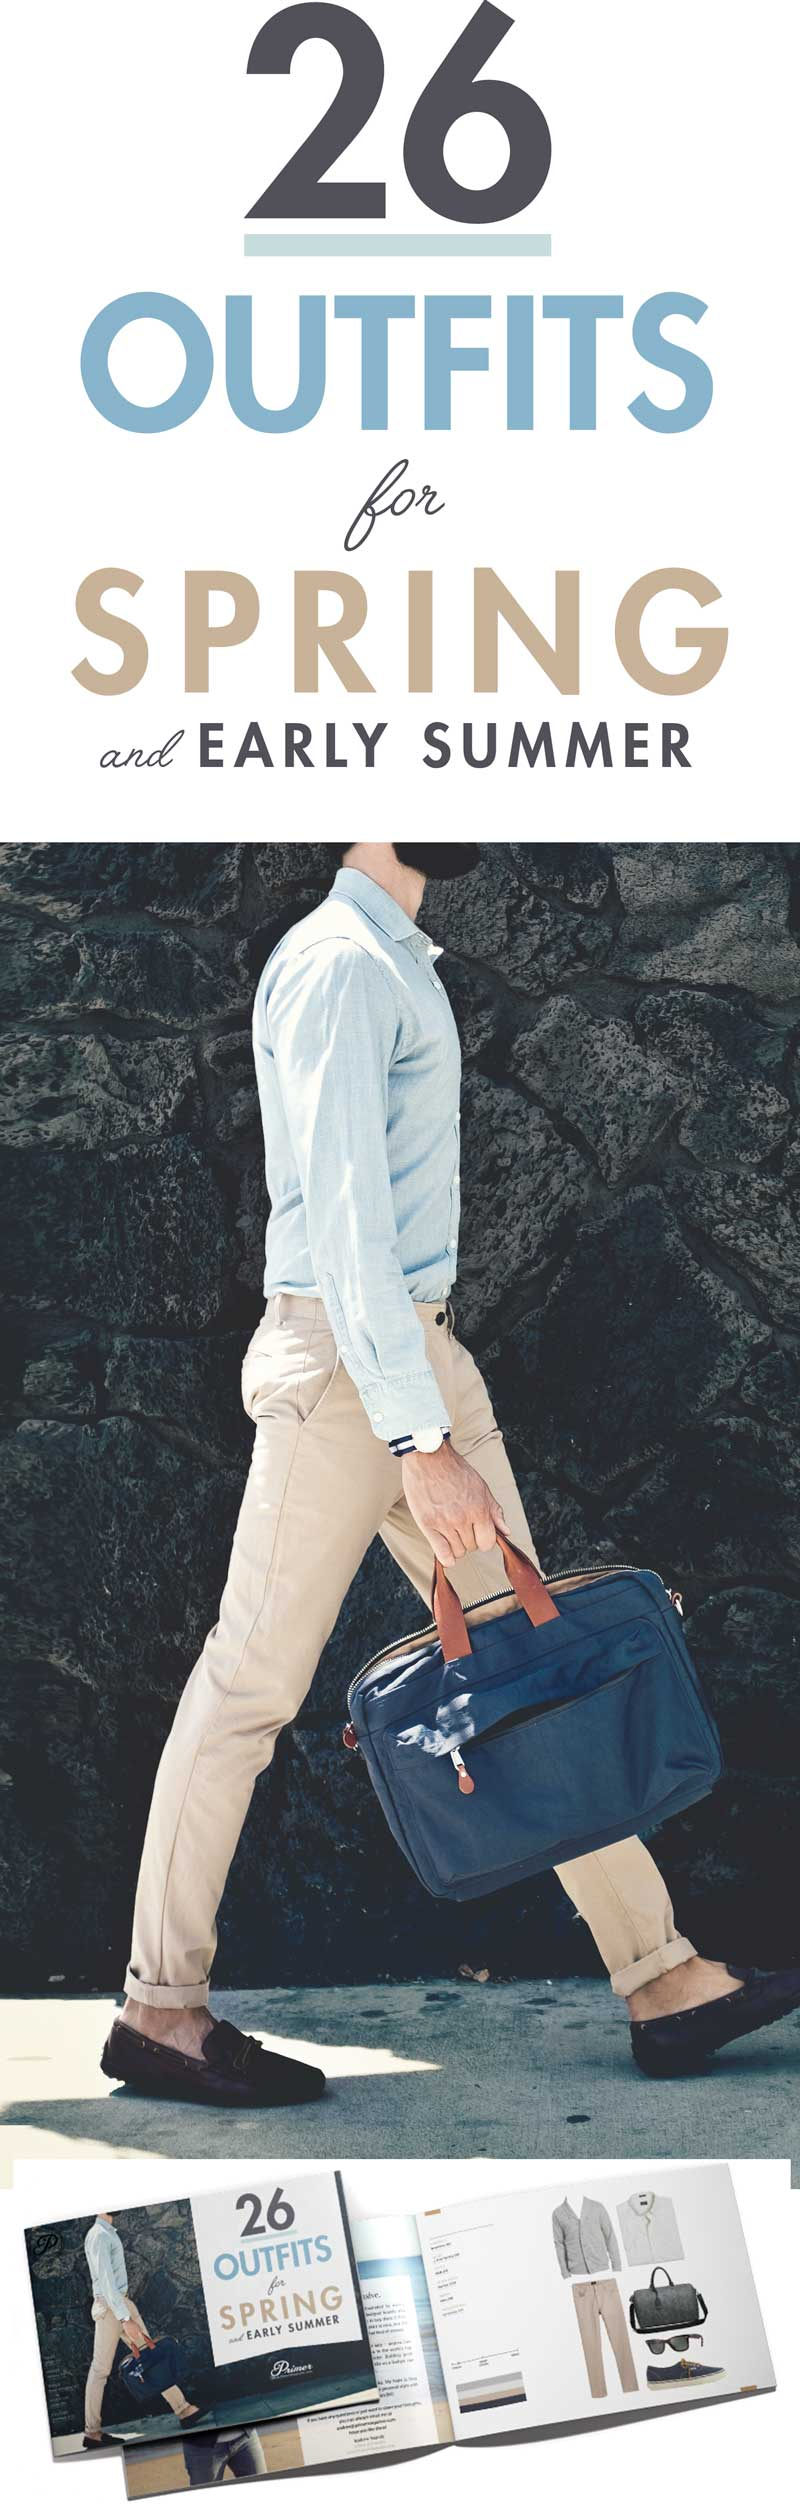 26 Outfits for Spring & Early Summer - Men's Fashion Inspiration - Outfit Ideas